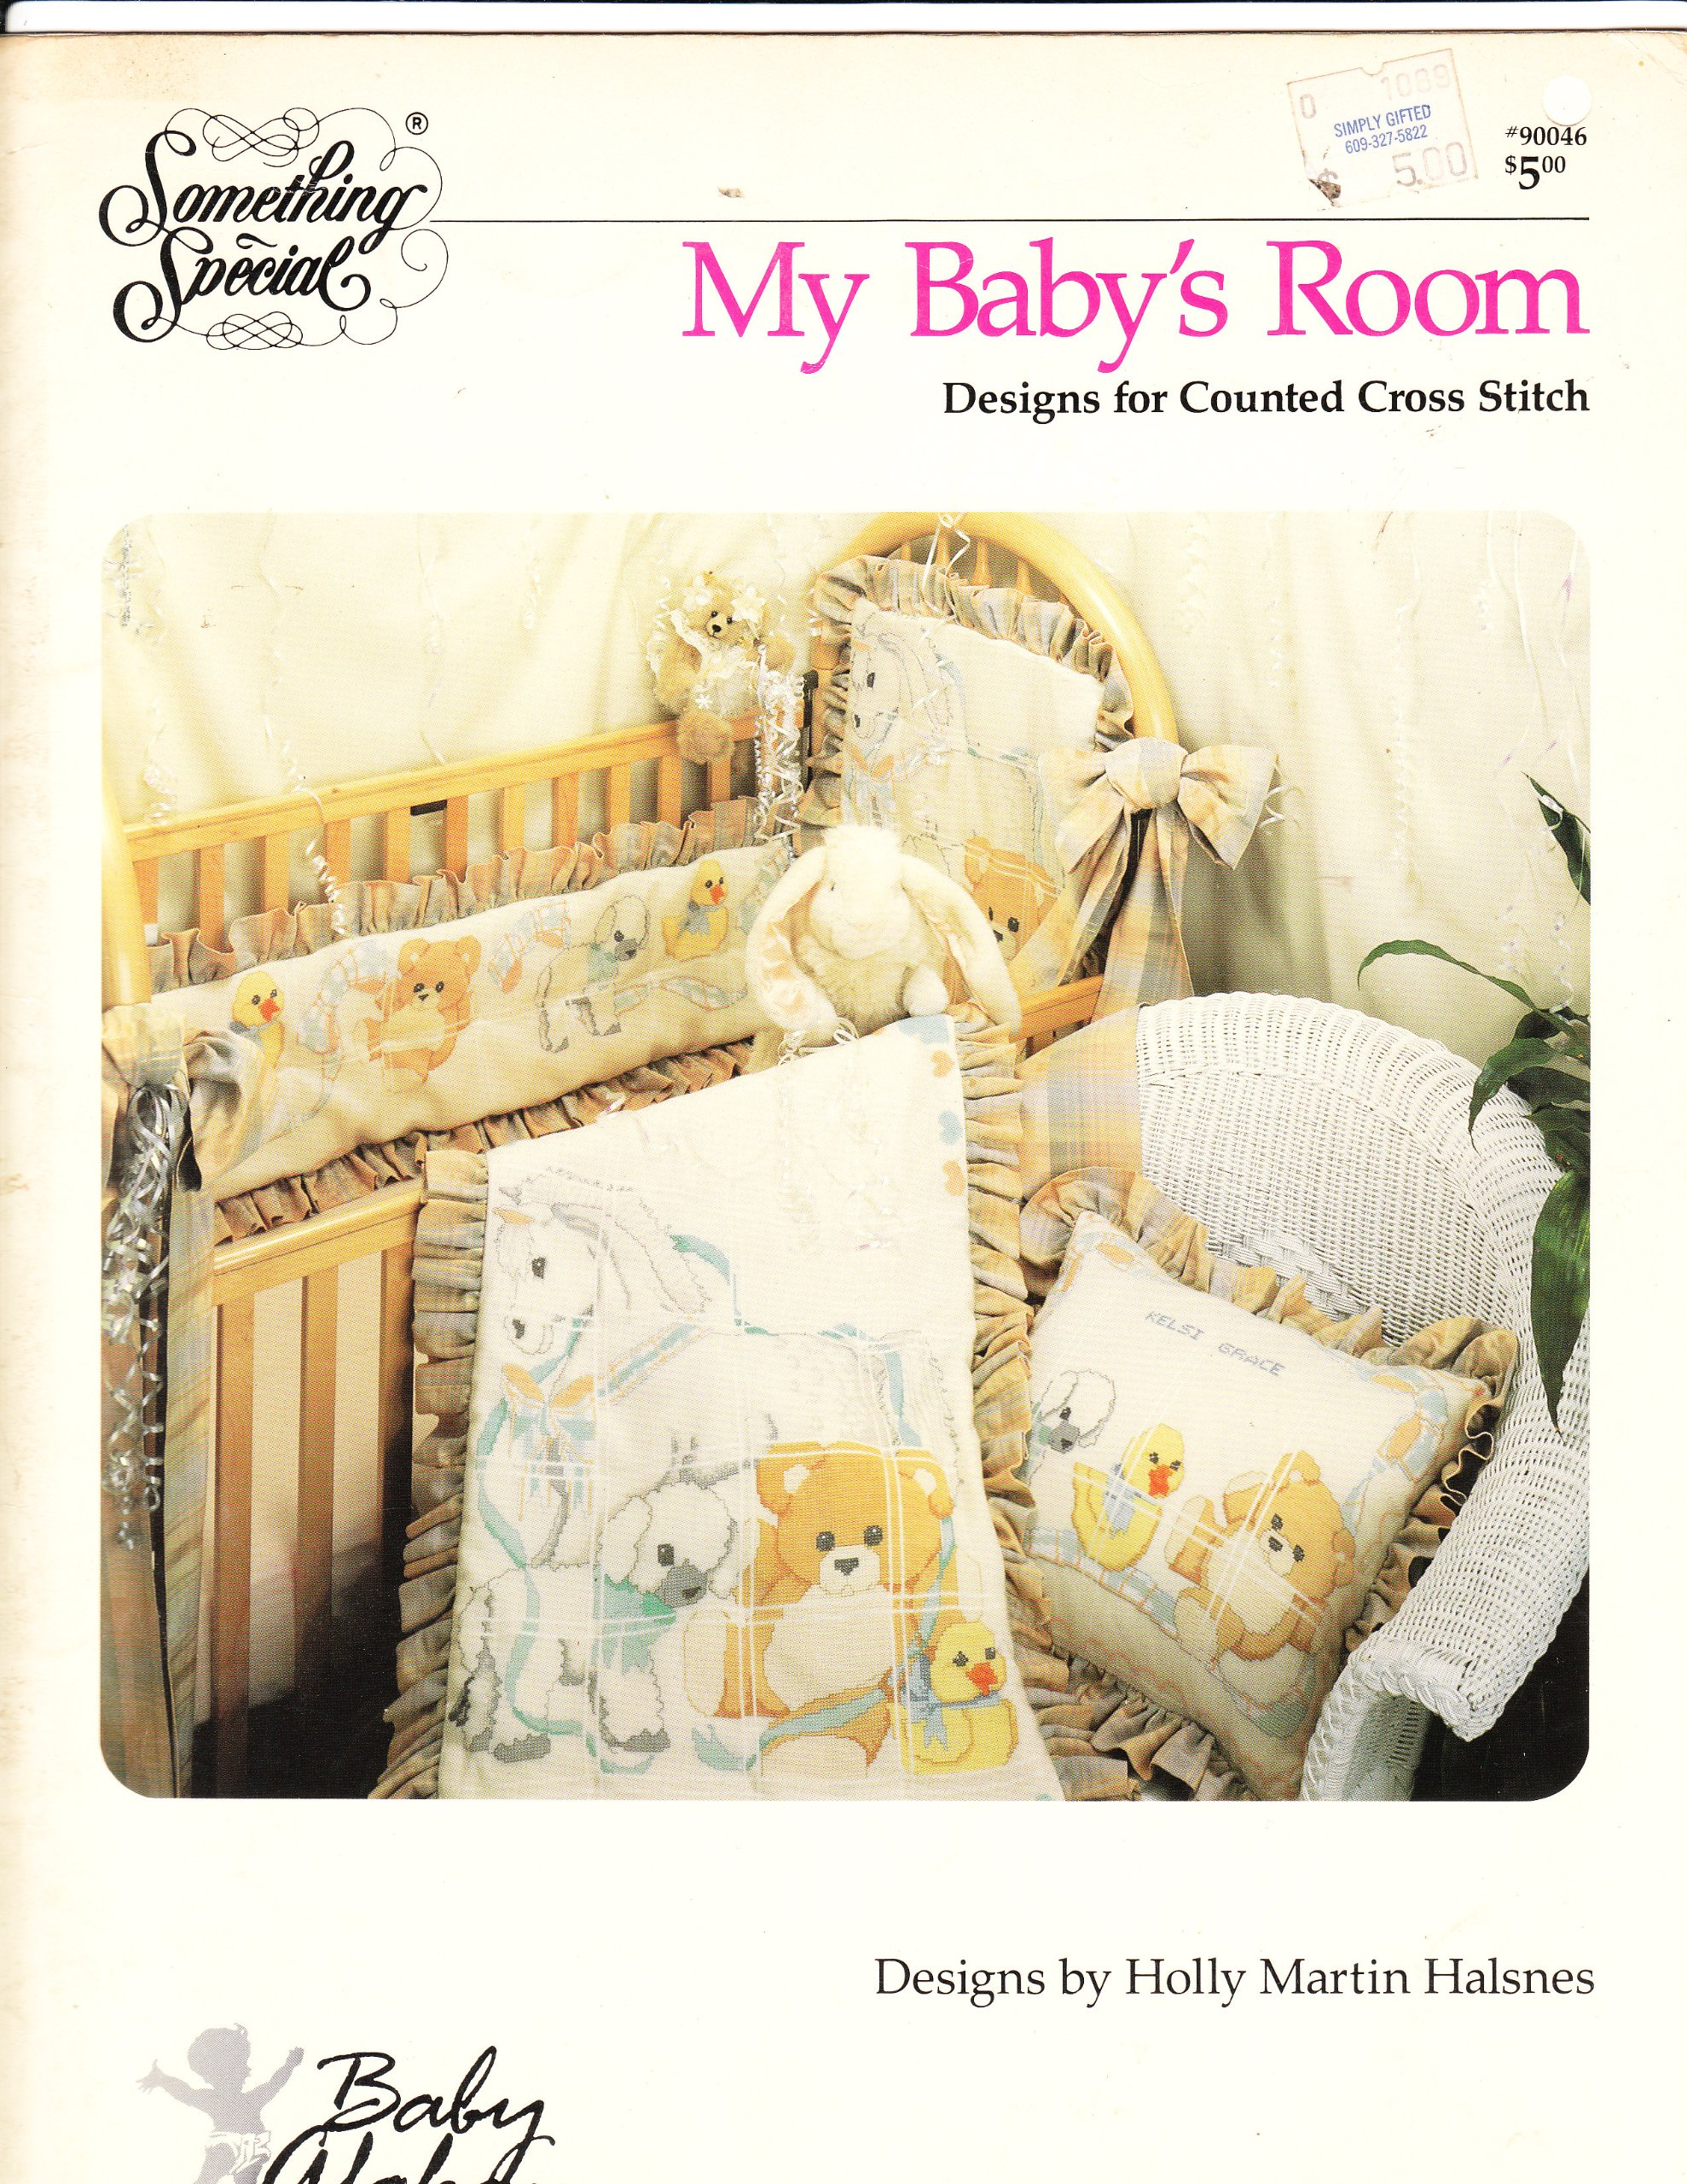 My Baby's Room. Designs for Counted Cross Stitch.